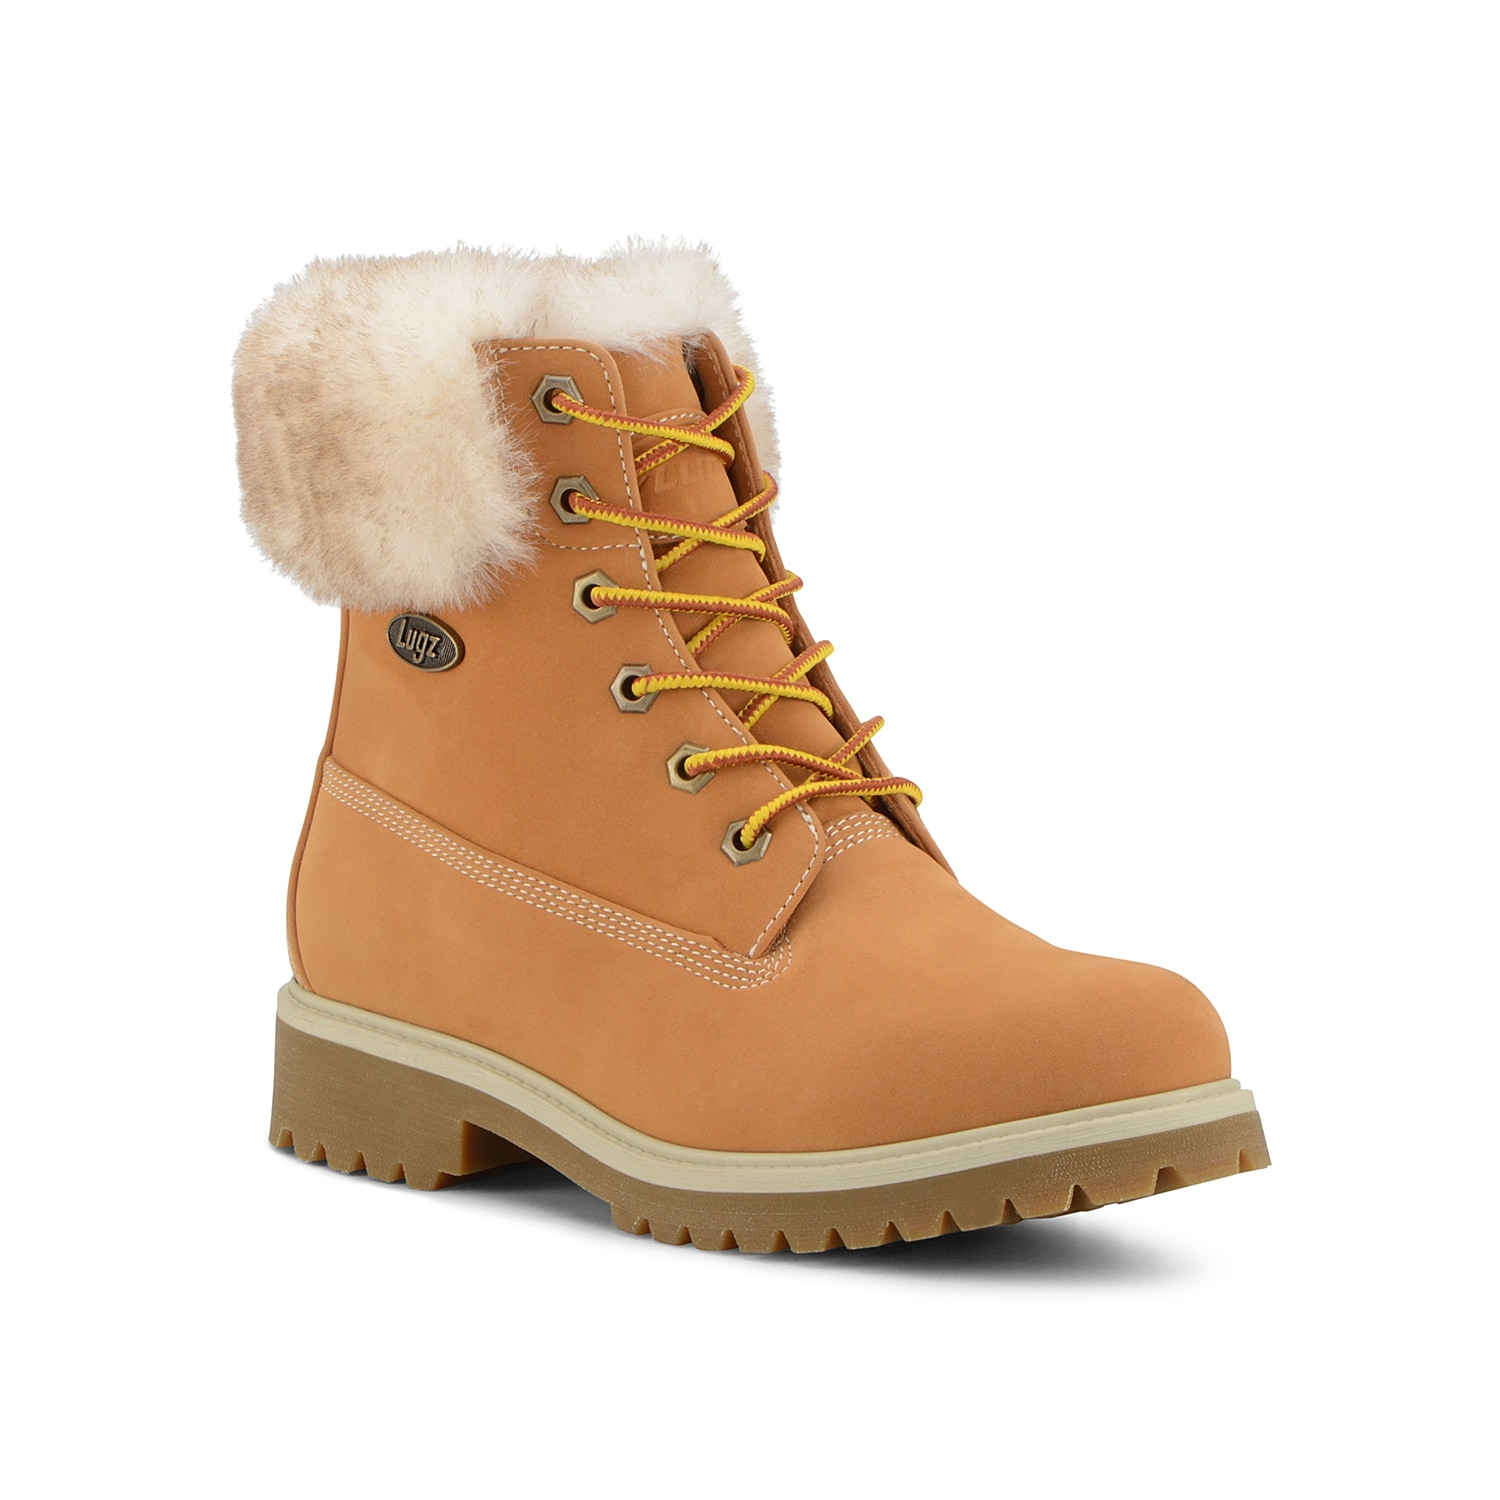 Add a feminine twist to the original Convoy boot from Lugz. This lace-up pair features a faux fur collar and a block heel for added height! Click here for Boot Measuring Guide.